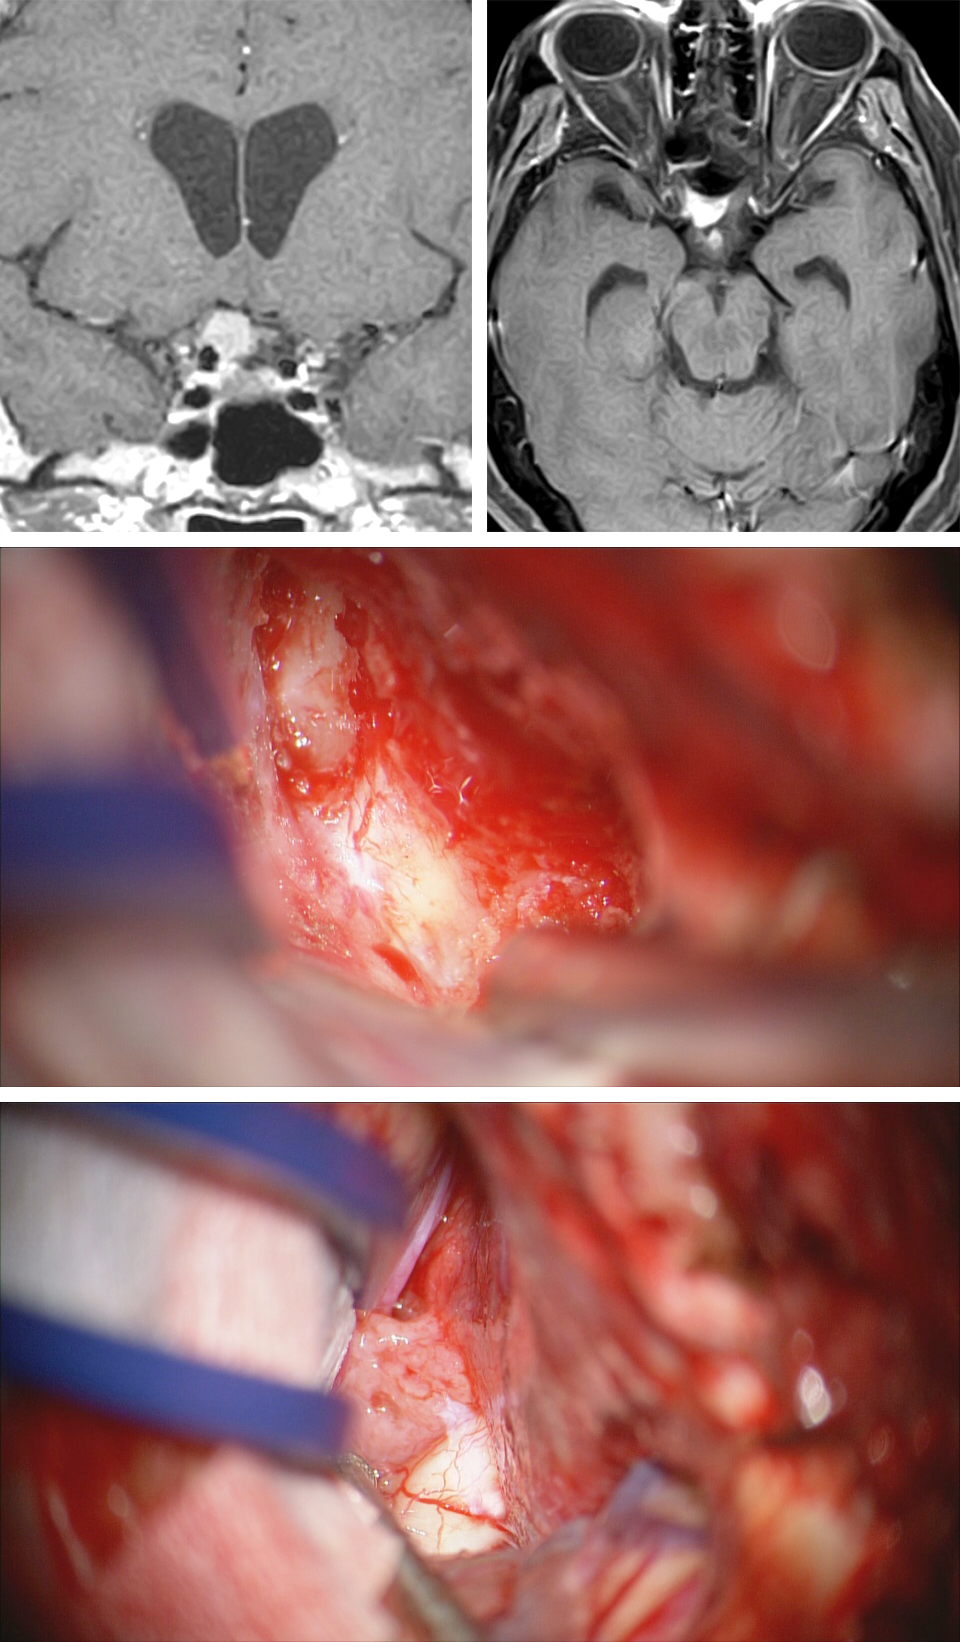 Figure 19: A right optic foramen, group 3 meningioma, is demonstrated (top image). Extradural clinoidectomy unroofs the optic nerve (middle photo) in preparation of intradural opening of the falciform ligament and dissection of the tumor within the optic canal. The extracanalicular extent of the tumor along the medial aspect of the nerve is shown upon dural opening and elevation of the frontal lobe (lower image).